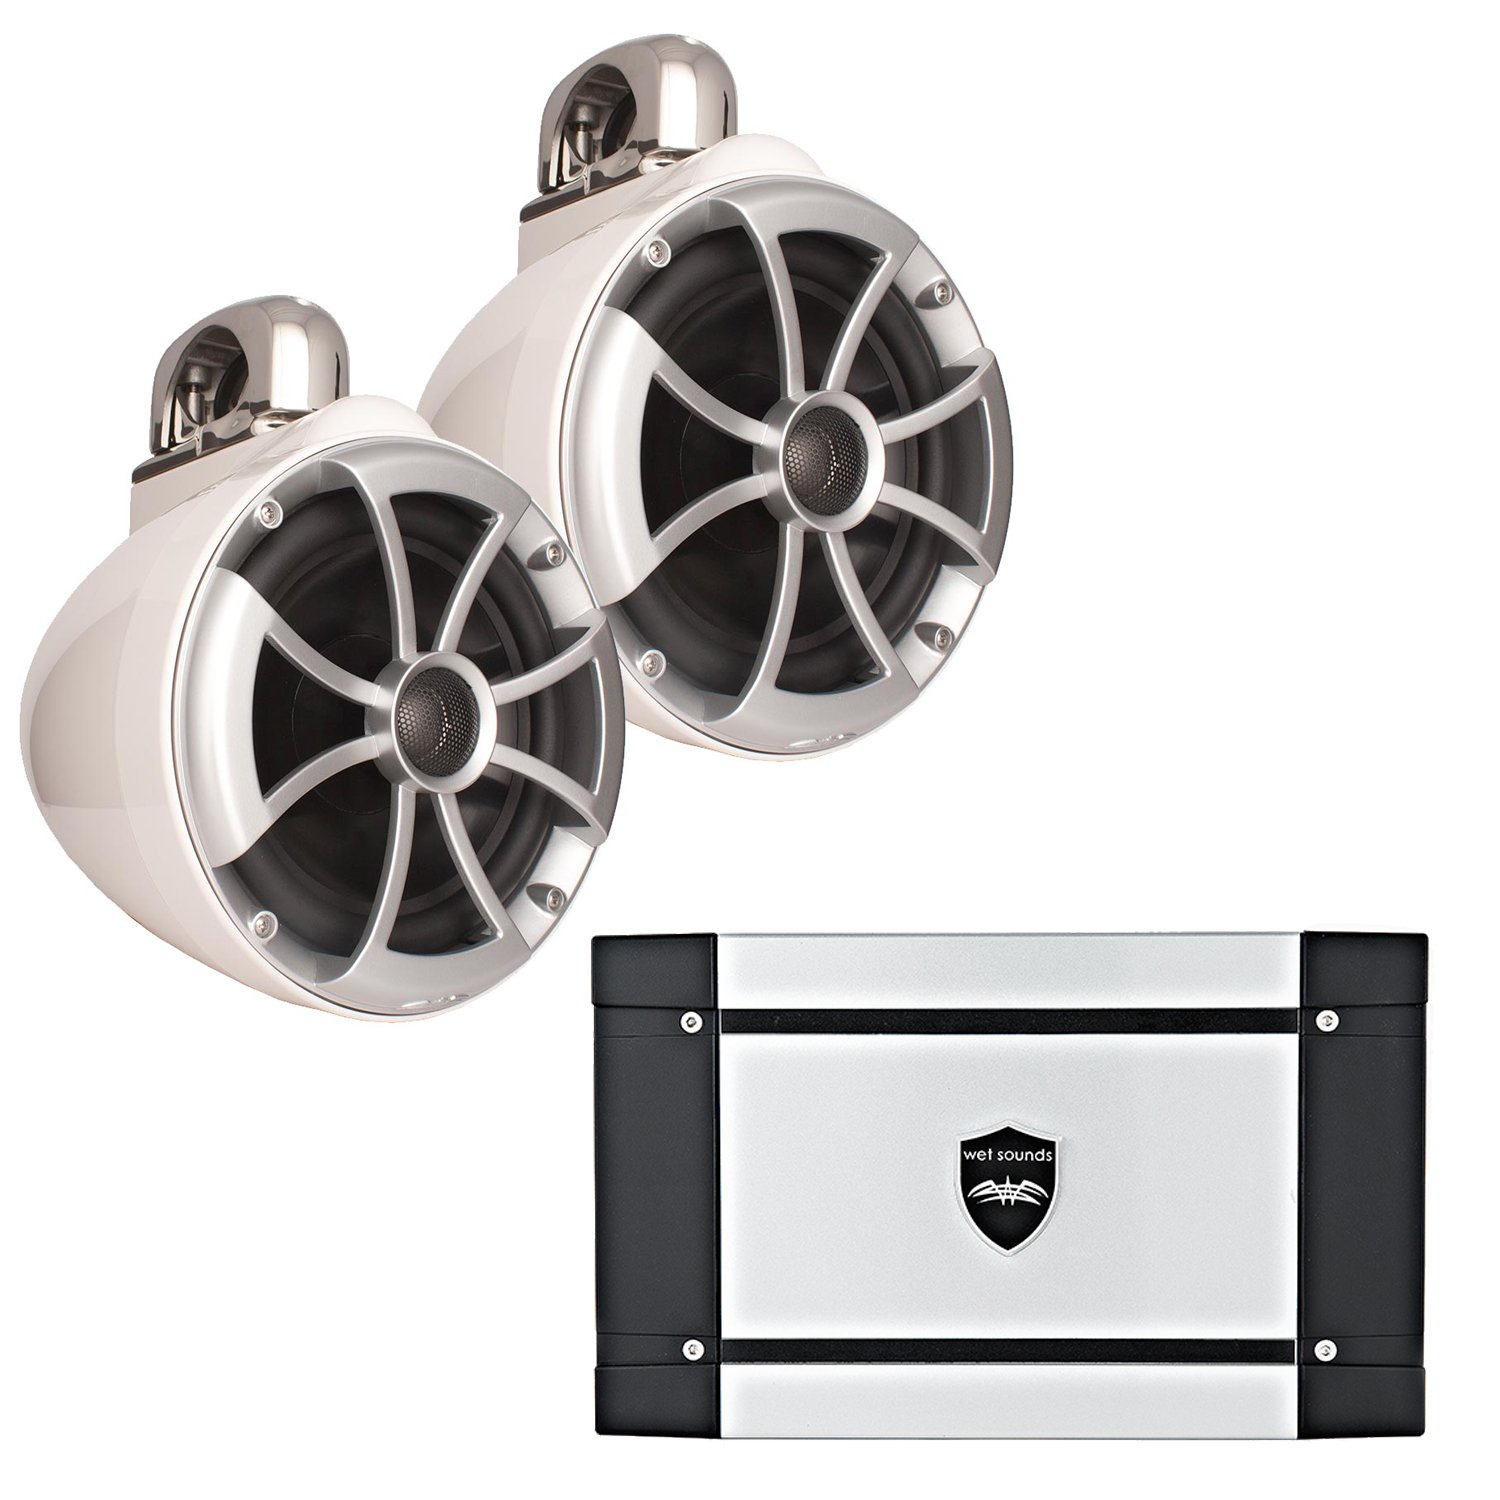 Wet Sounds ICON8-WFC 8'' White Fixed Clamp Tower Speakers & Wet Sounds HT-2 600 Watt Amplifier